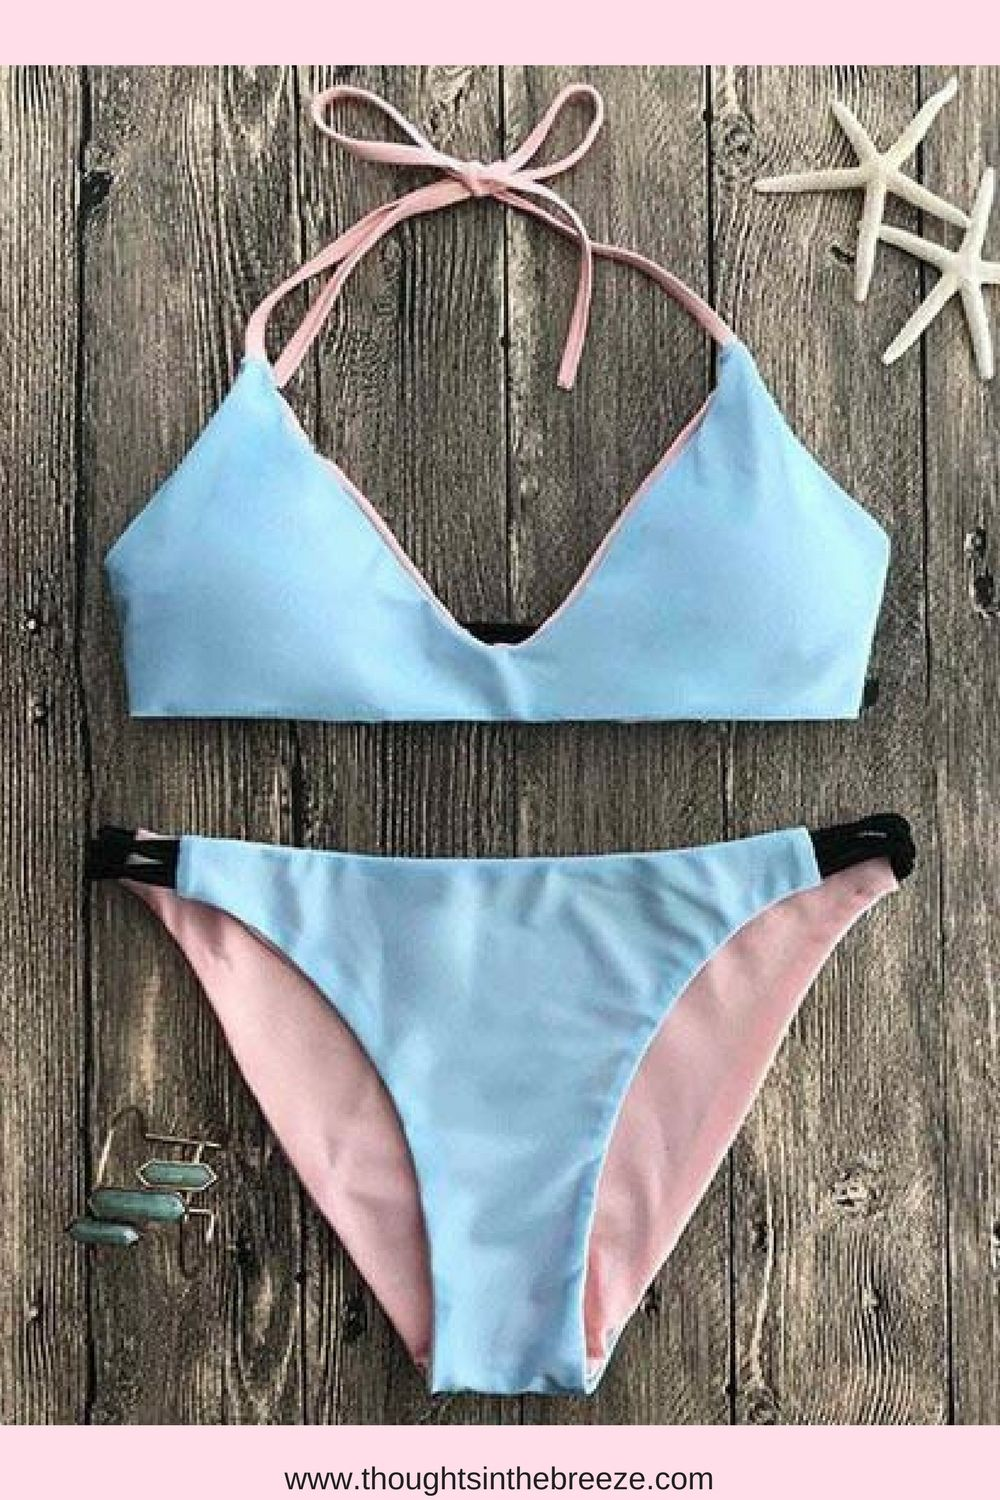 ec63f043c5b58 Chicnico Cute Plain Blue Bikini Set. Fashionable swimsuits for summer and  spring break. Trendy selections of stylish swimwear online. There are sexy